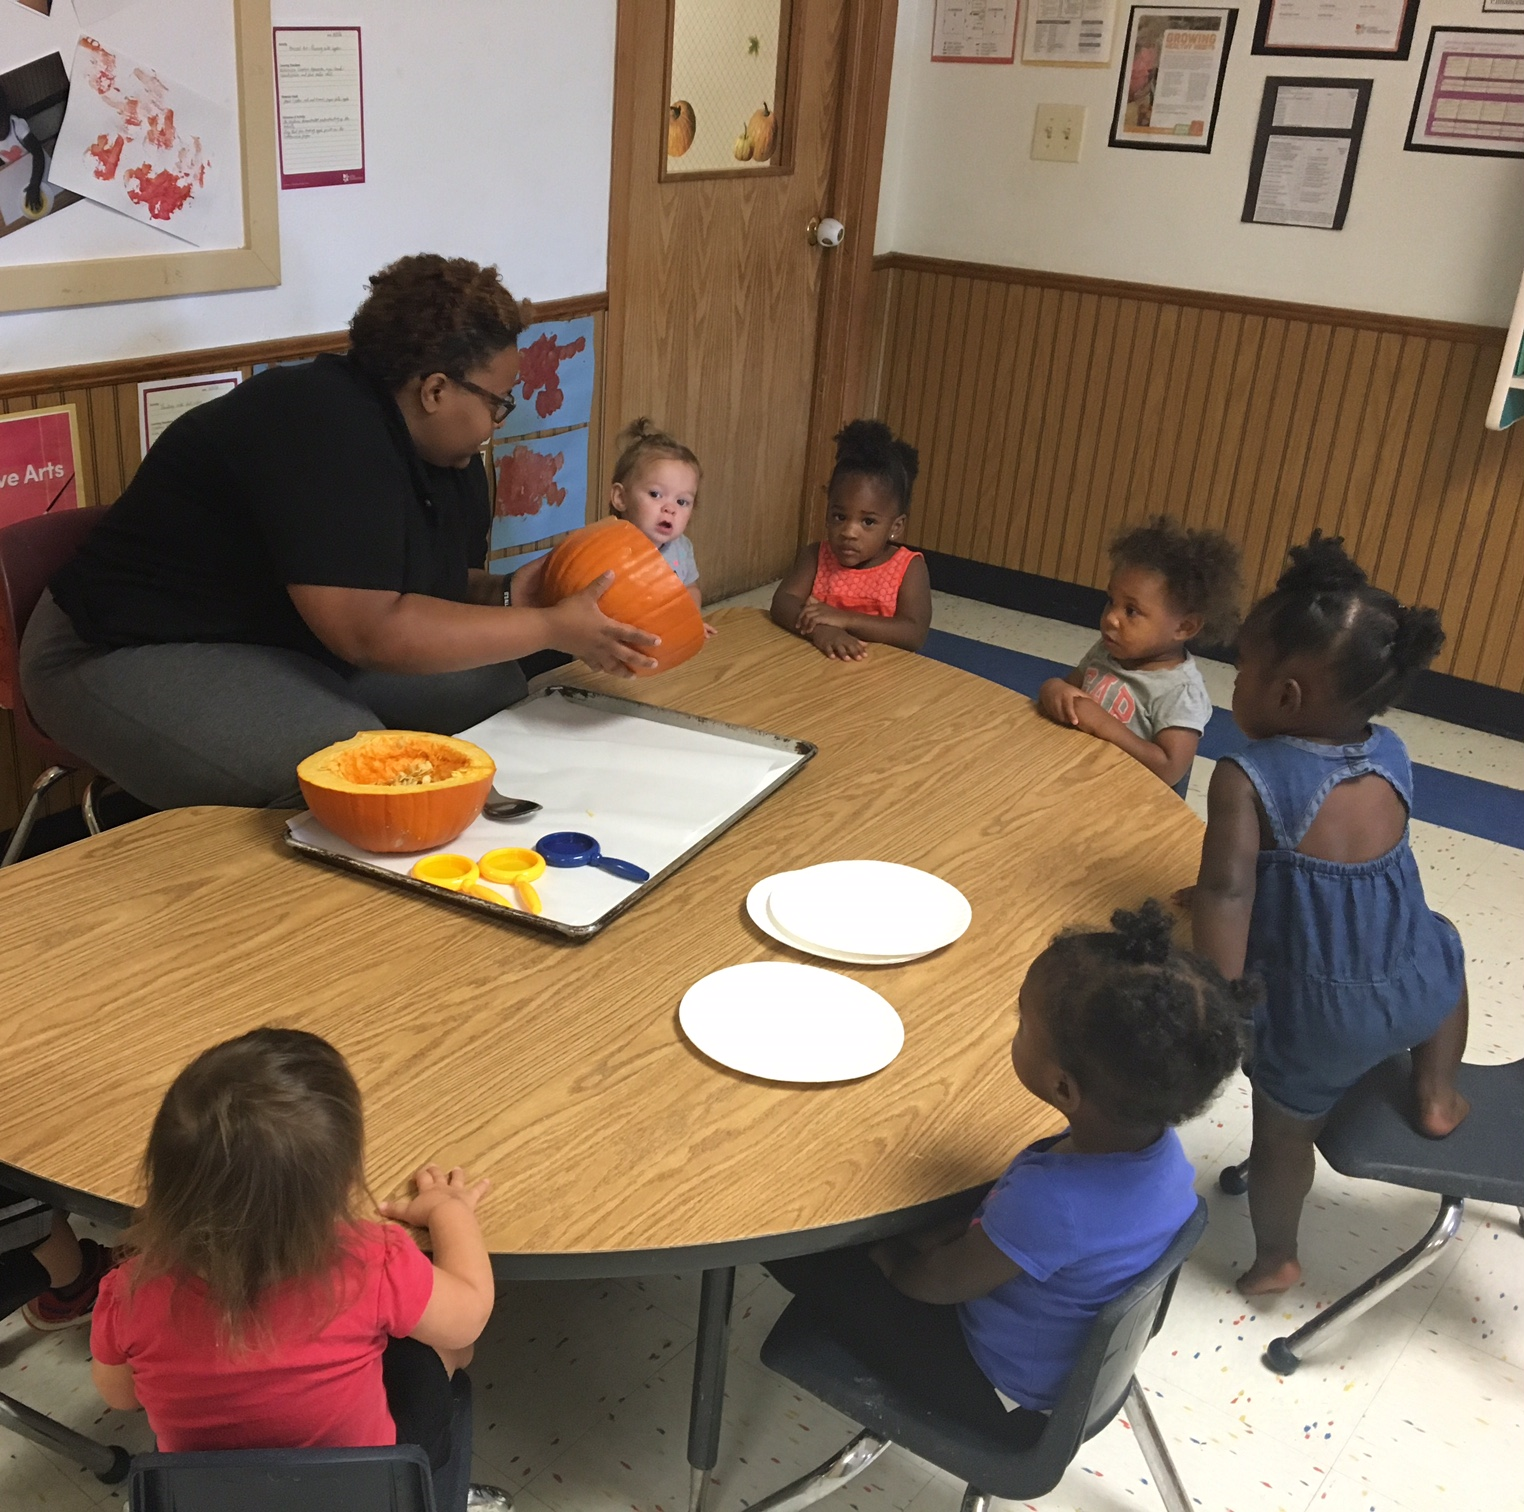 Ms. Andi is letting the children use their cognitive development by doing a wet and messy project, exploring pumpkins. They are coming to understand and interacting with the world around them.